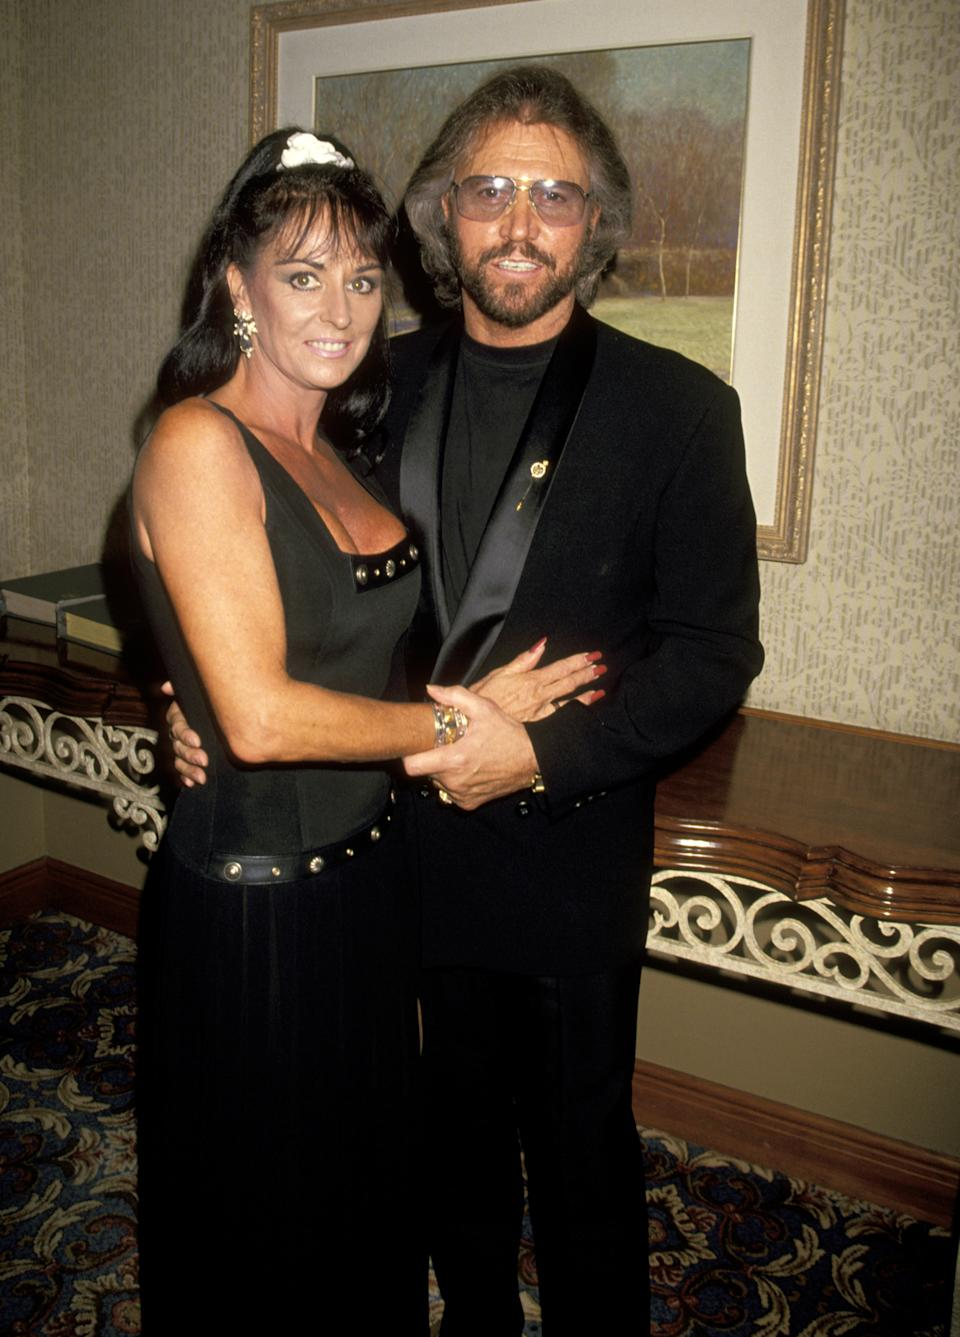 Barry Gibb and Wife Linda Ann Gray during 25th Annual Songwriters Hall of Fame Awards Dinner and Ceremony at Sheraton Hotel in New York, New York, United States. (Photo by Jim Smeal/Ron Galella Collection via Getty Images)